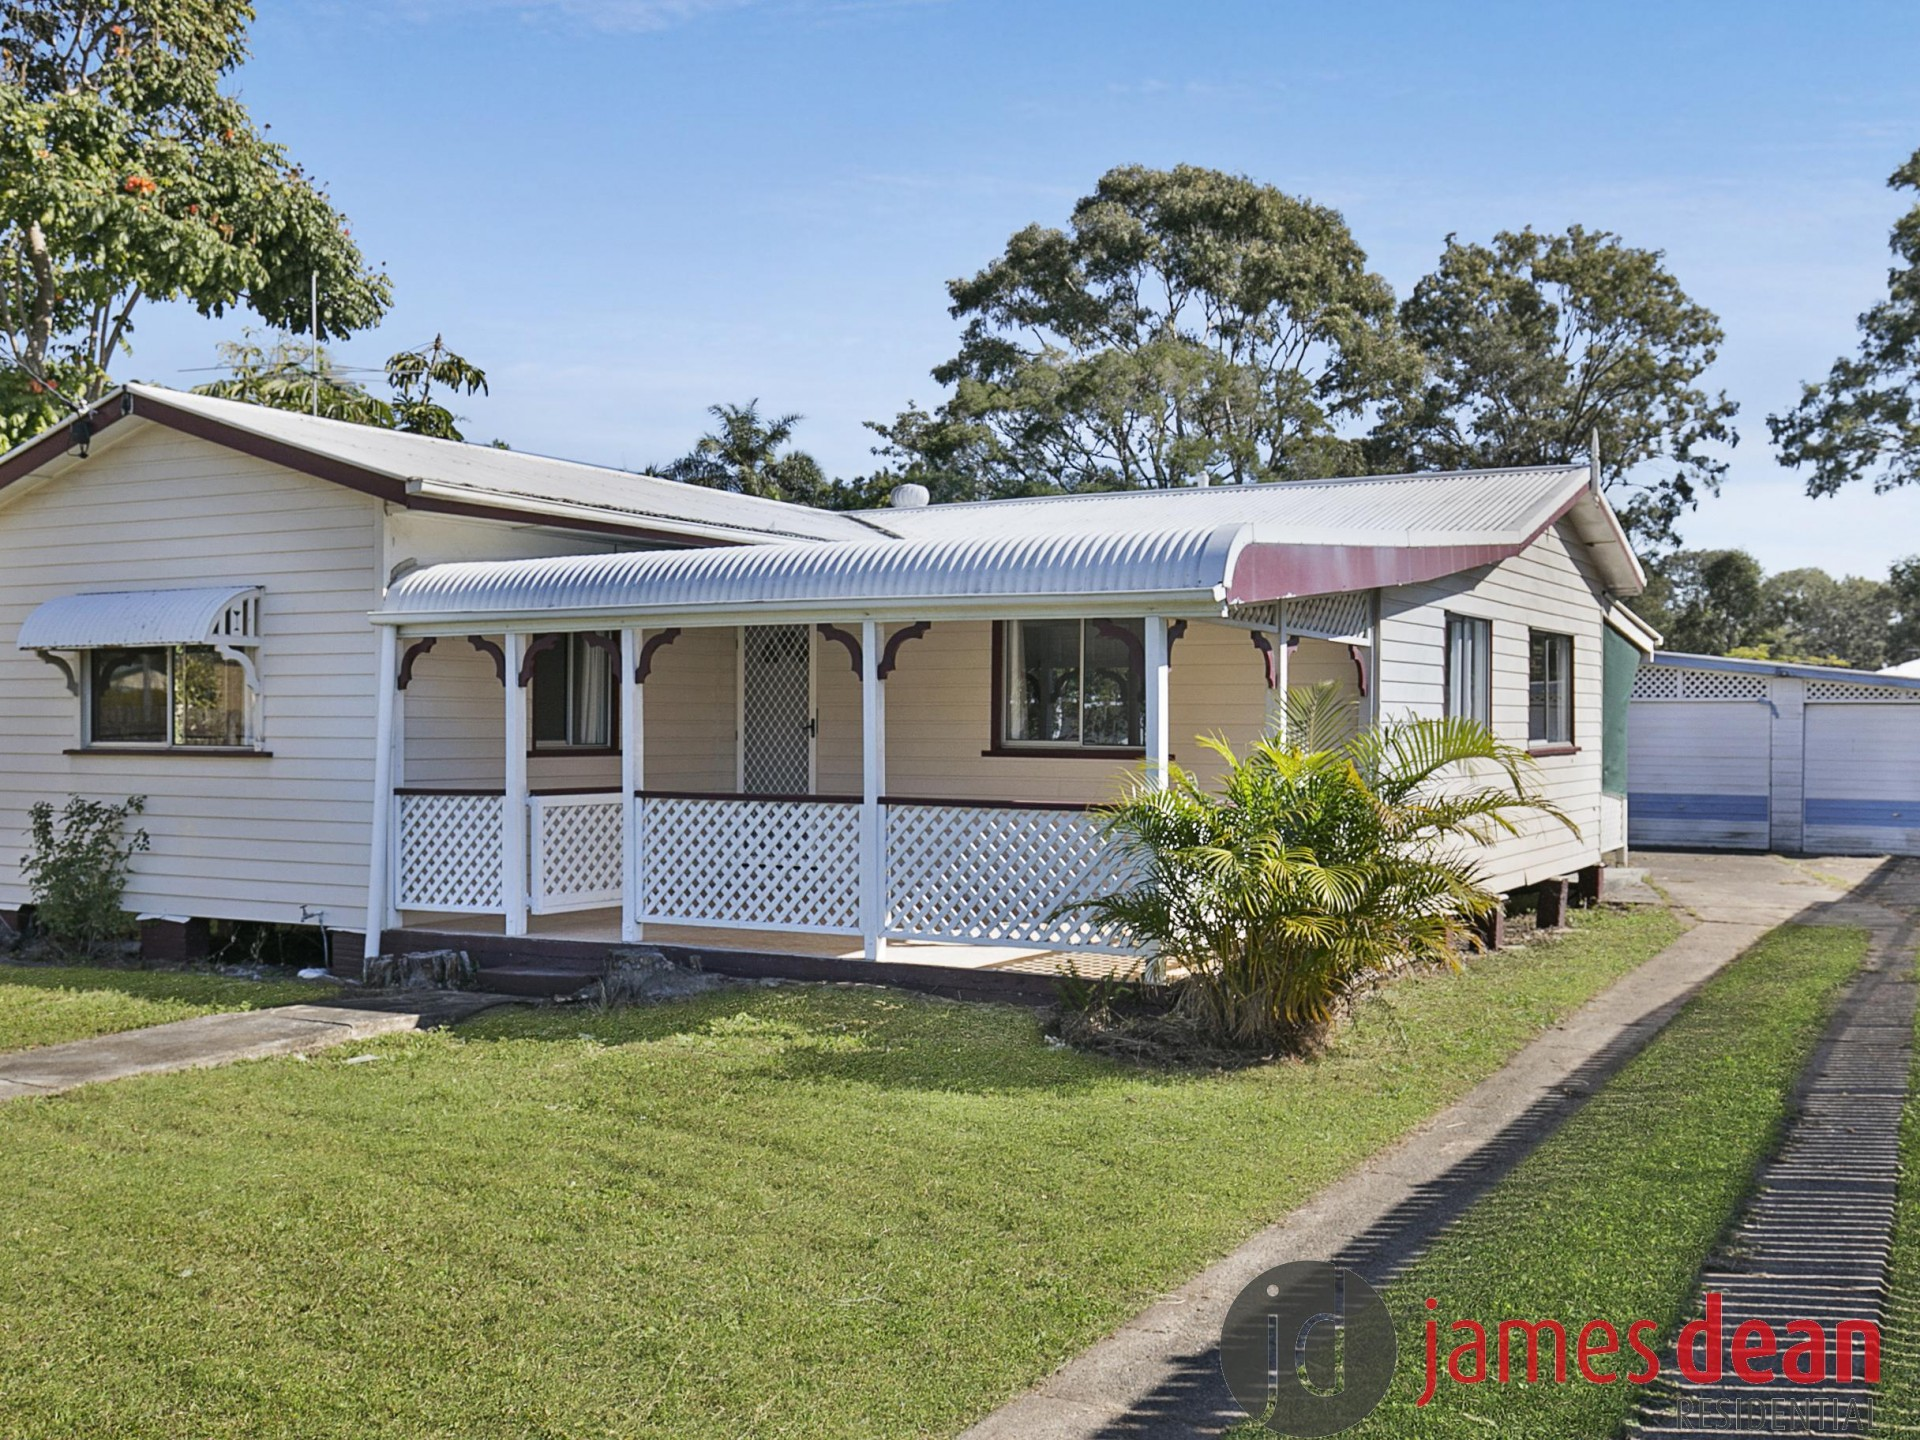 Repainted & Recarpeted Tingalpa Home on Half an Acre